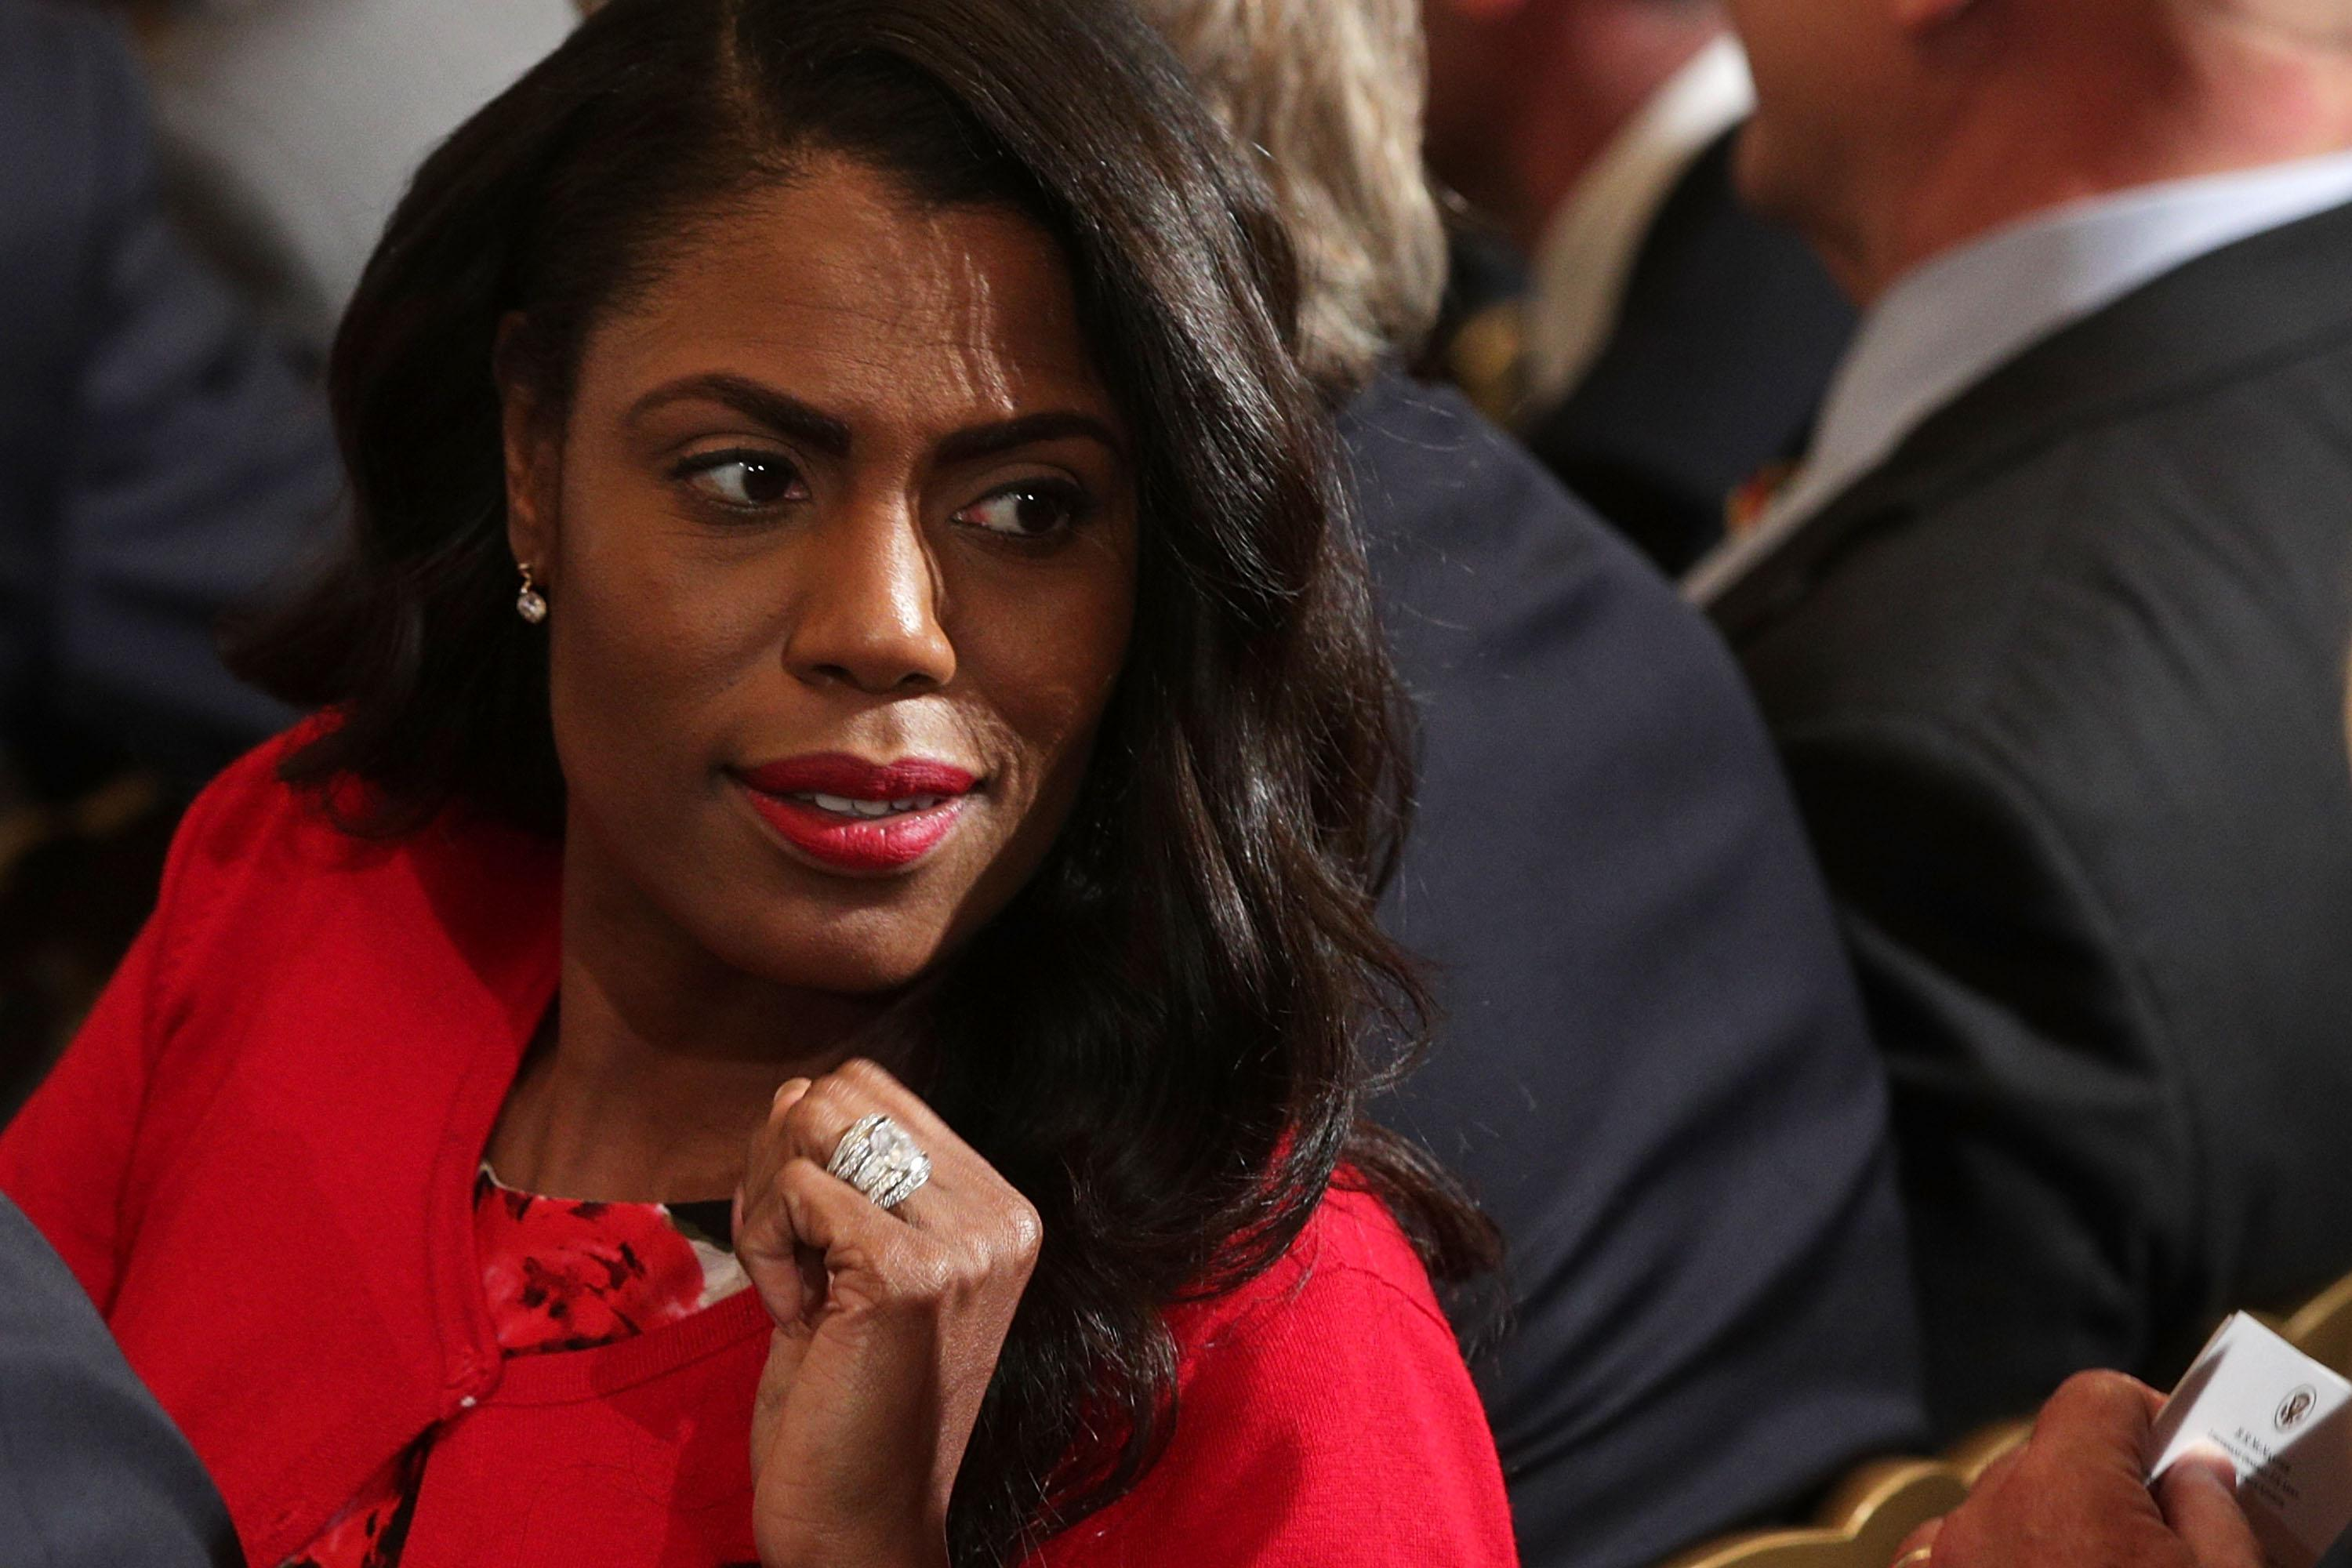 Omarosa Manigault attends a nomination announcement at the East Room of the White House October 12, 2017 in Washington, D.C.